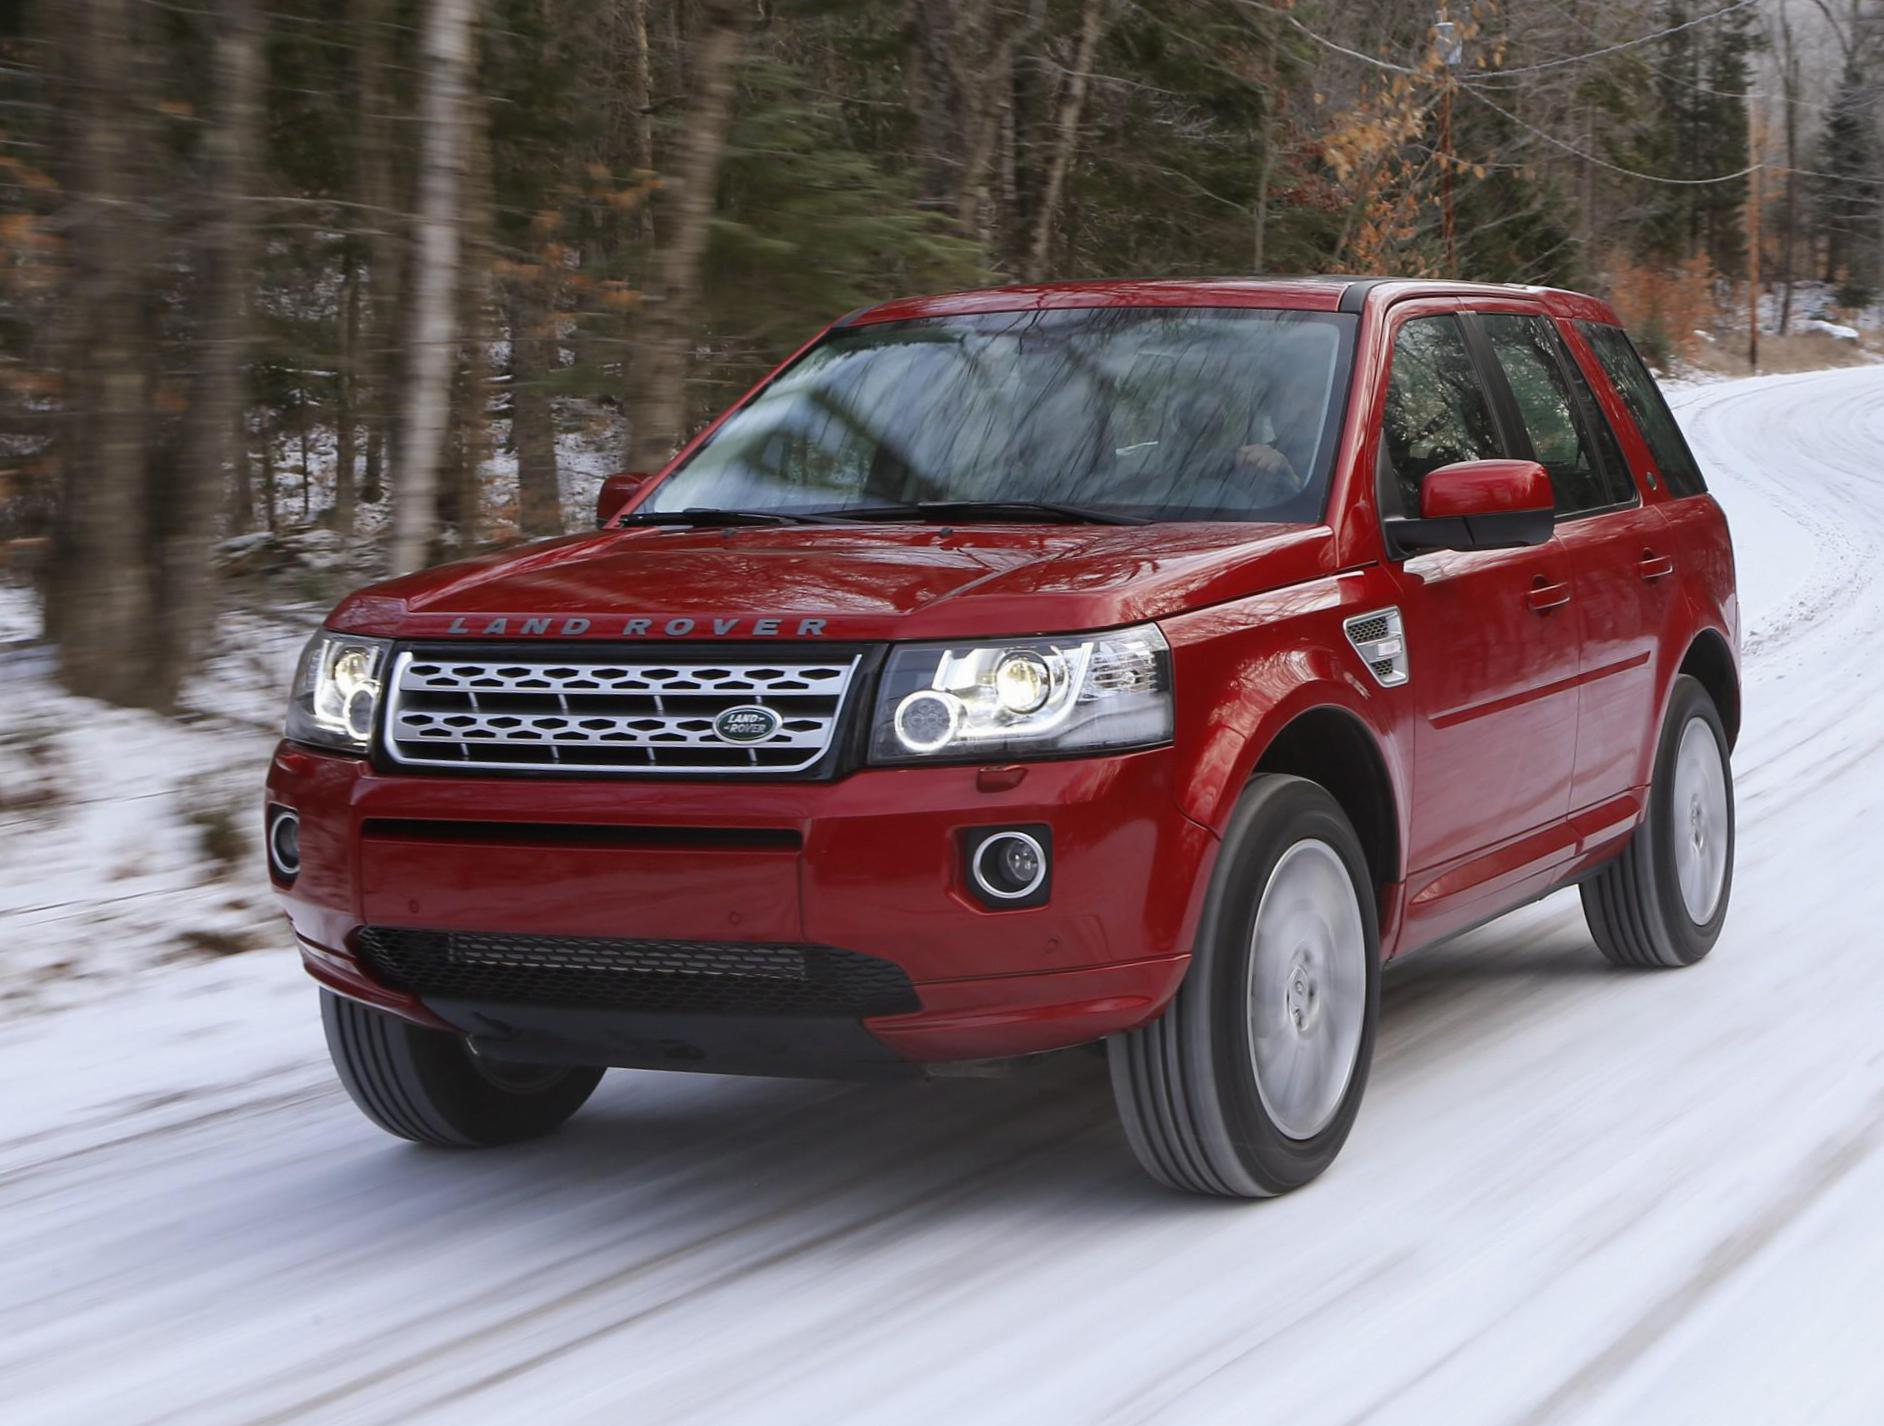 Land Rover Freelander 2 new 2012